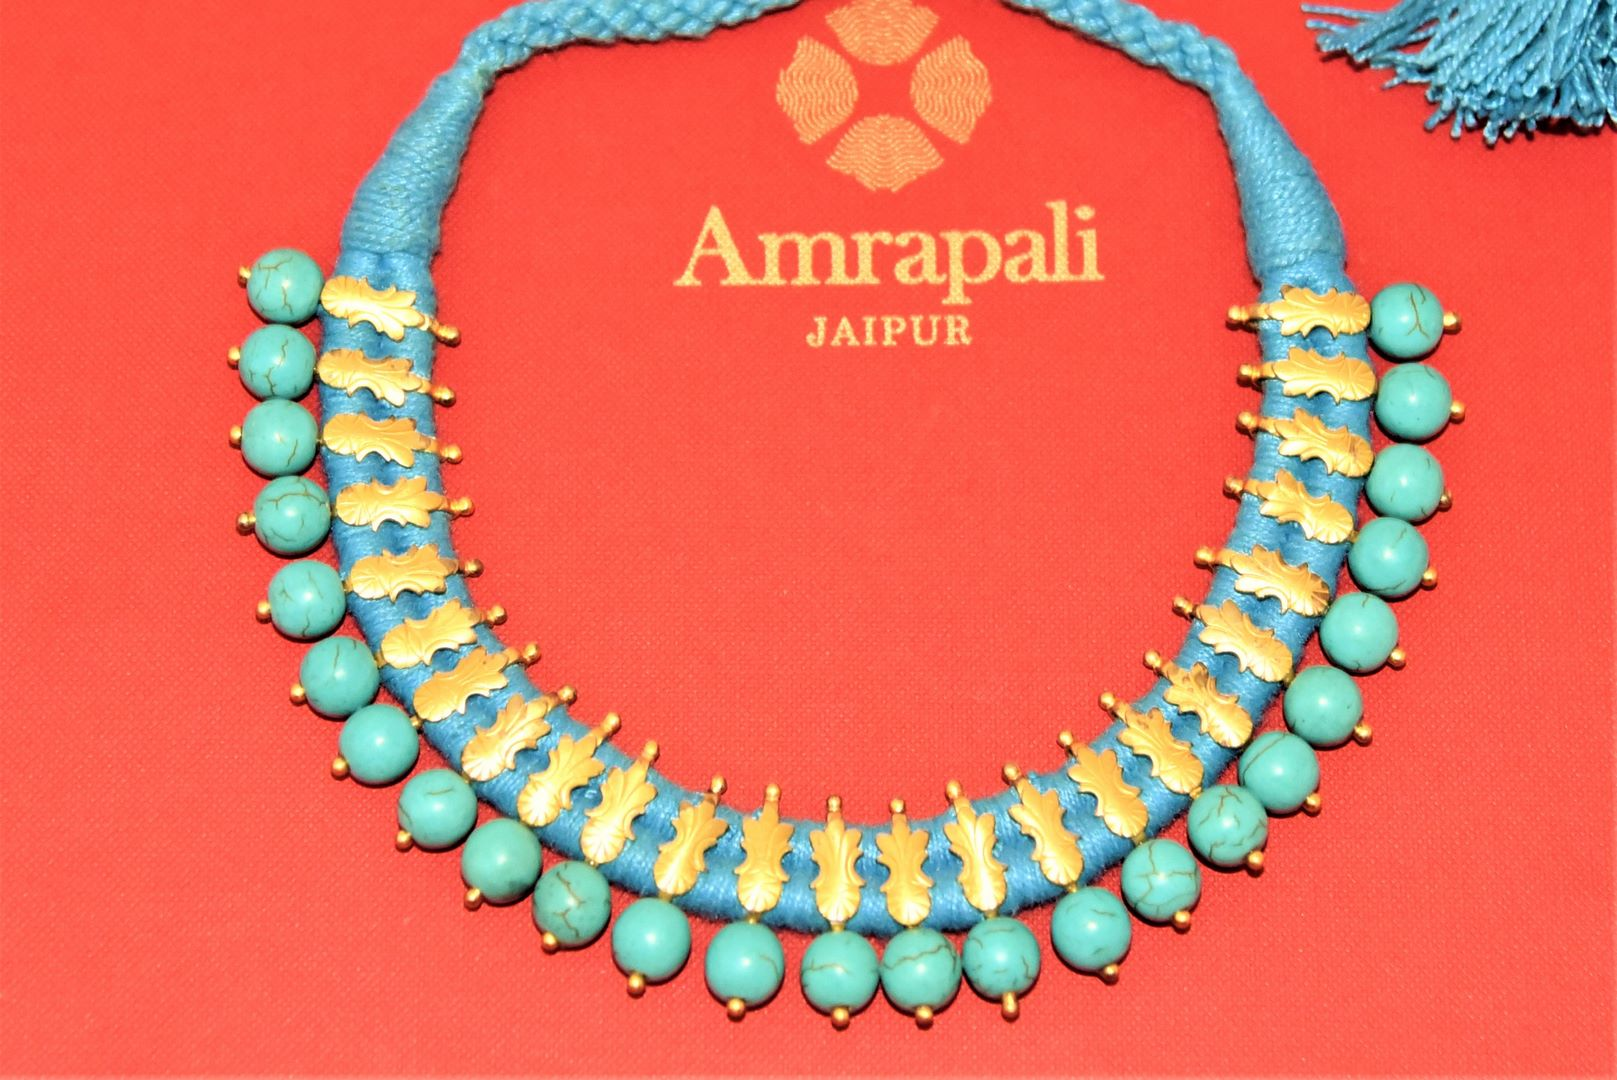 Buy beautiful Amrapali silver gold plated blue thread necklace online in USA with turquoise stones. Enhance your ethnic attires with exquisite Amrapali silver jewelry, silver necklace, silver gold plated jewelry, silver earrings from Pure Elegance Indian fashion store in USA.-flatlay